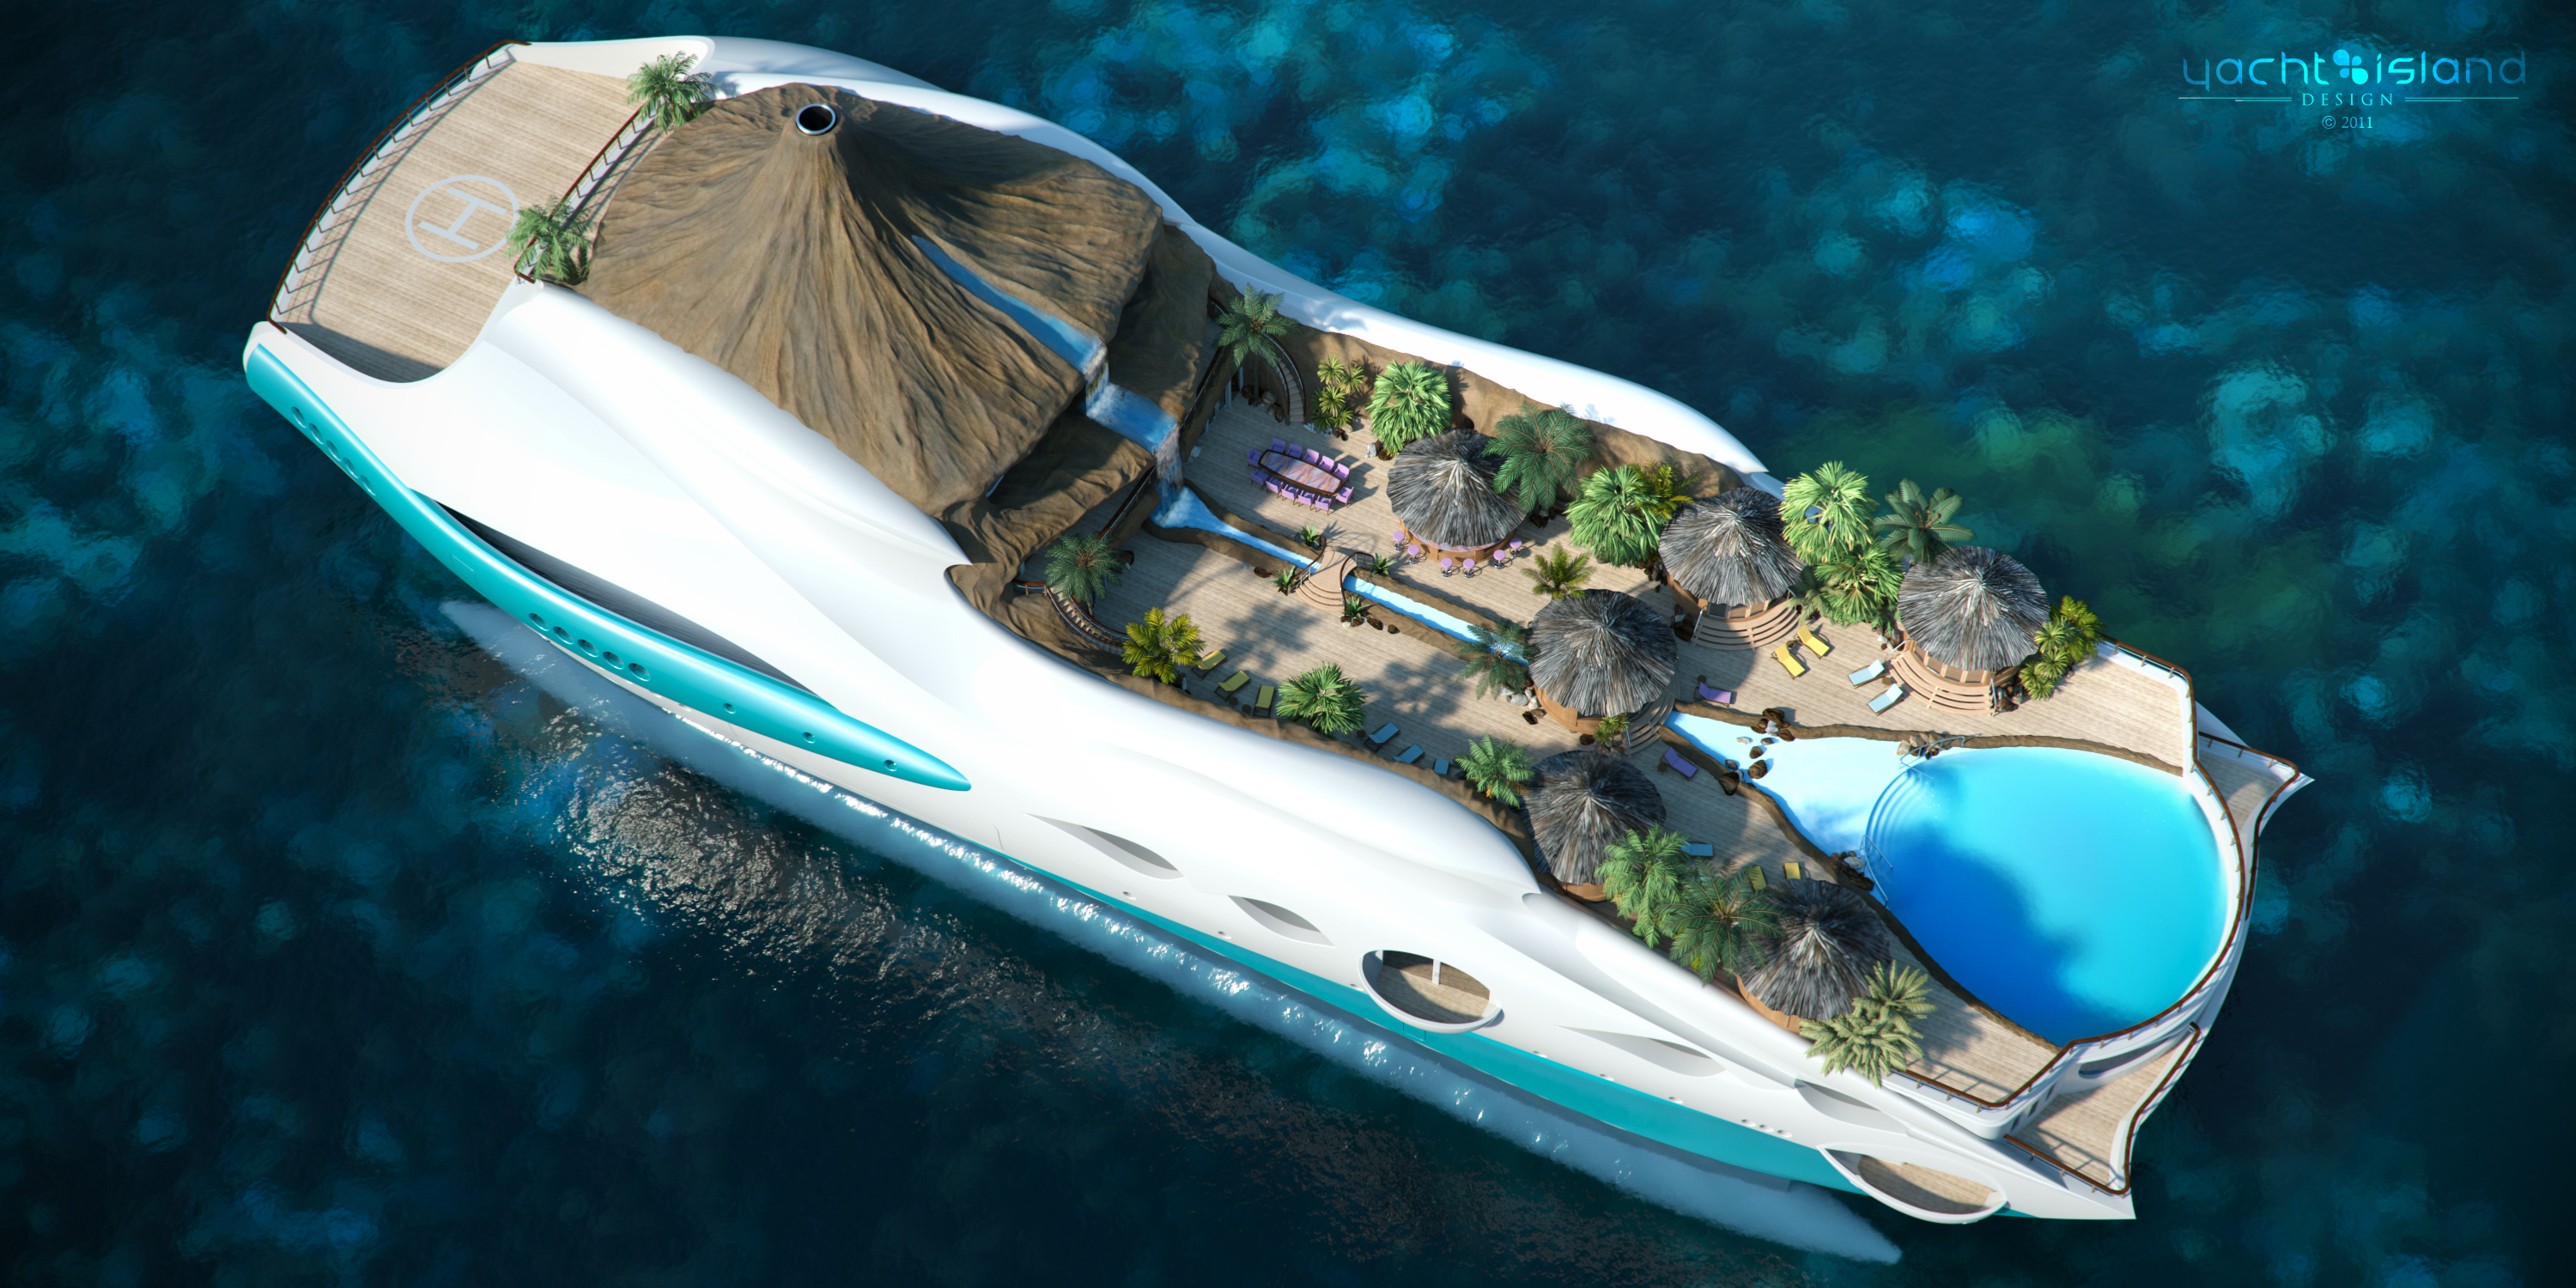 90m 'Tropical Island Paradise' superyacht by Yacht Island Design